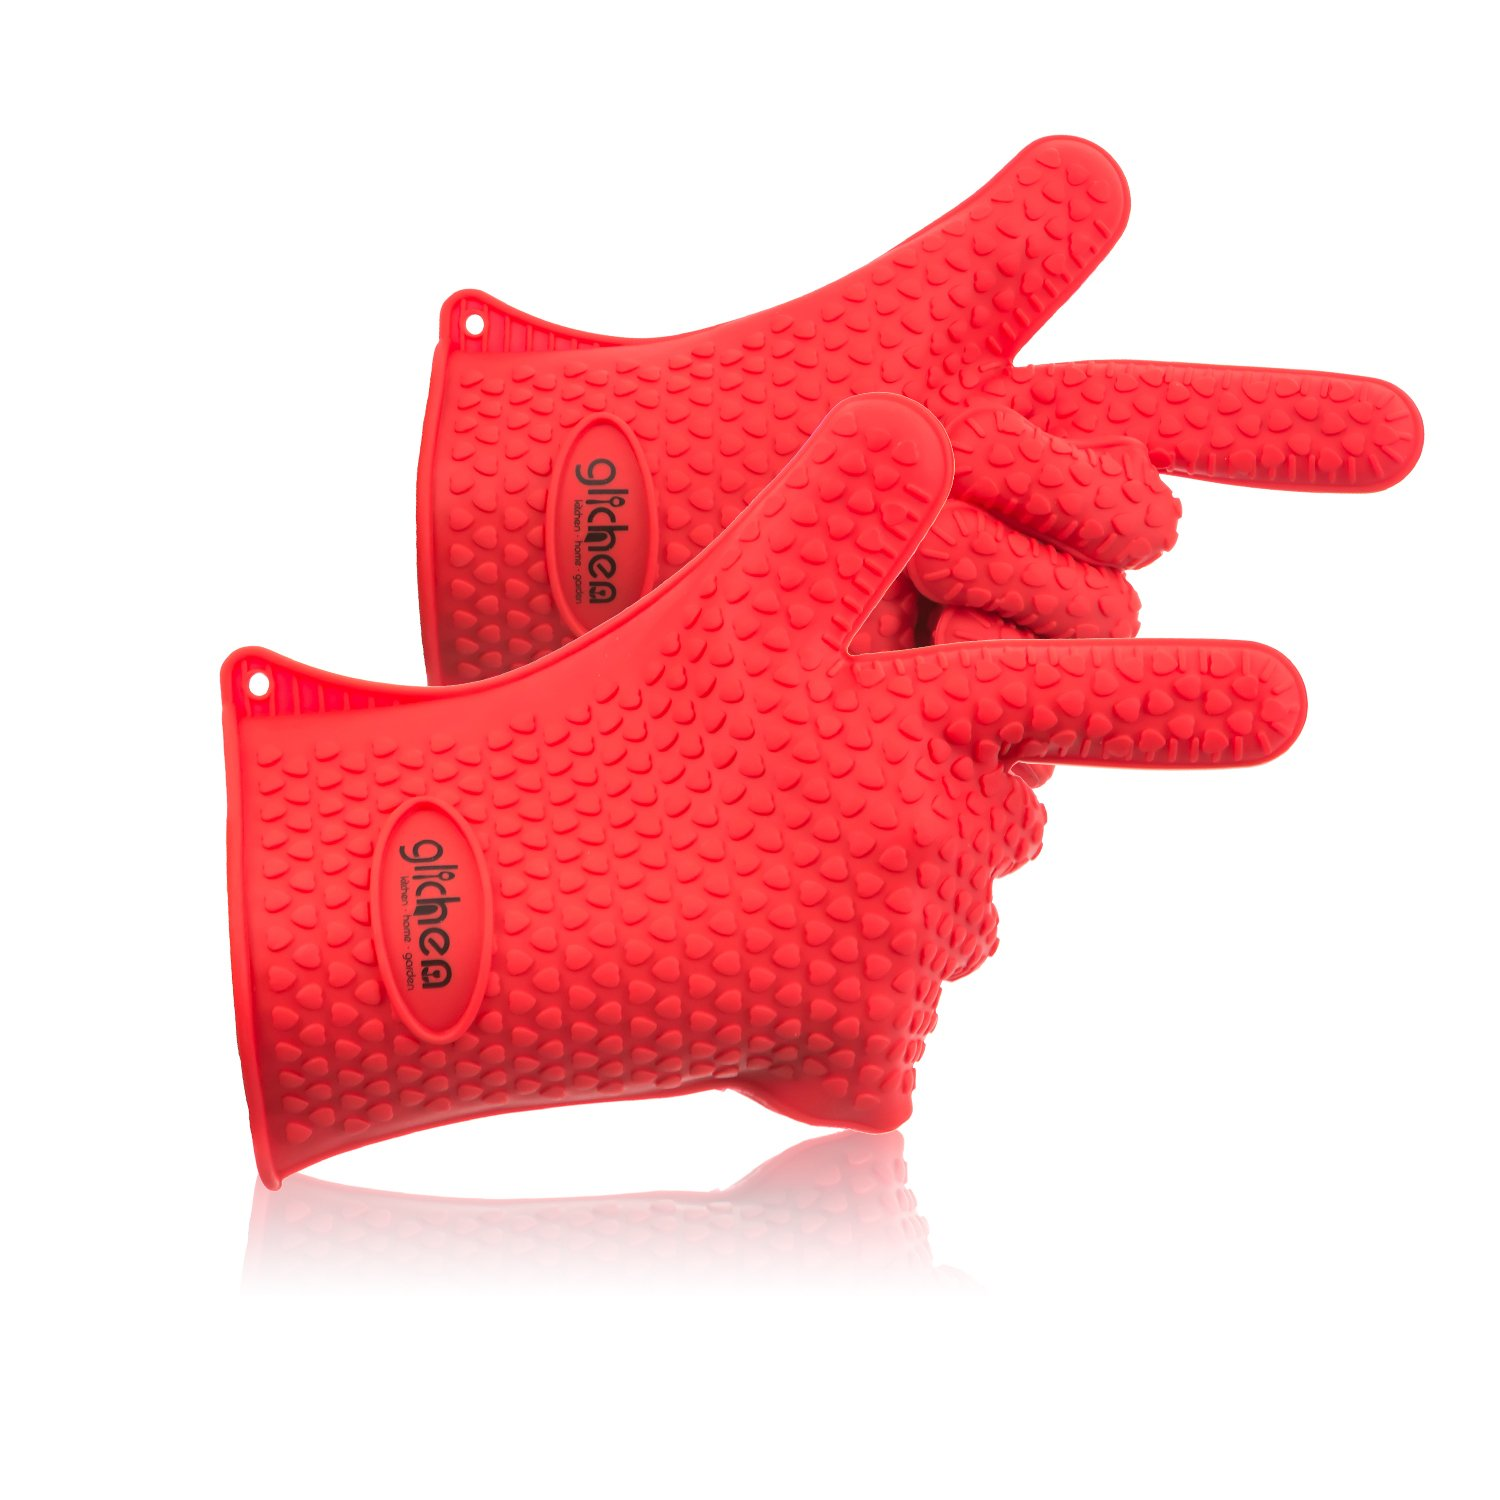 #1 Best Value - 2 High Heat Resistant Silicone Cooking Gloves - Better Than Oven Mitts - Included Is a Free Ebook - Perfect for Use in Kitchen, BBQ, Grilling, Smoking & Potholder - 100%!